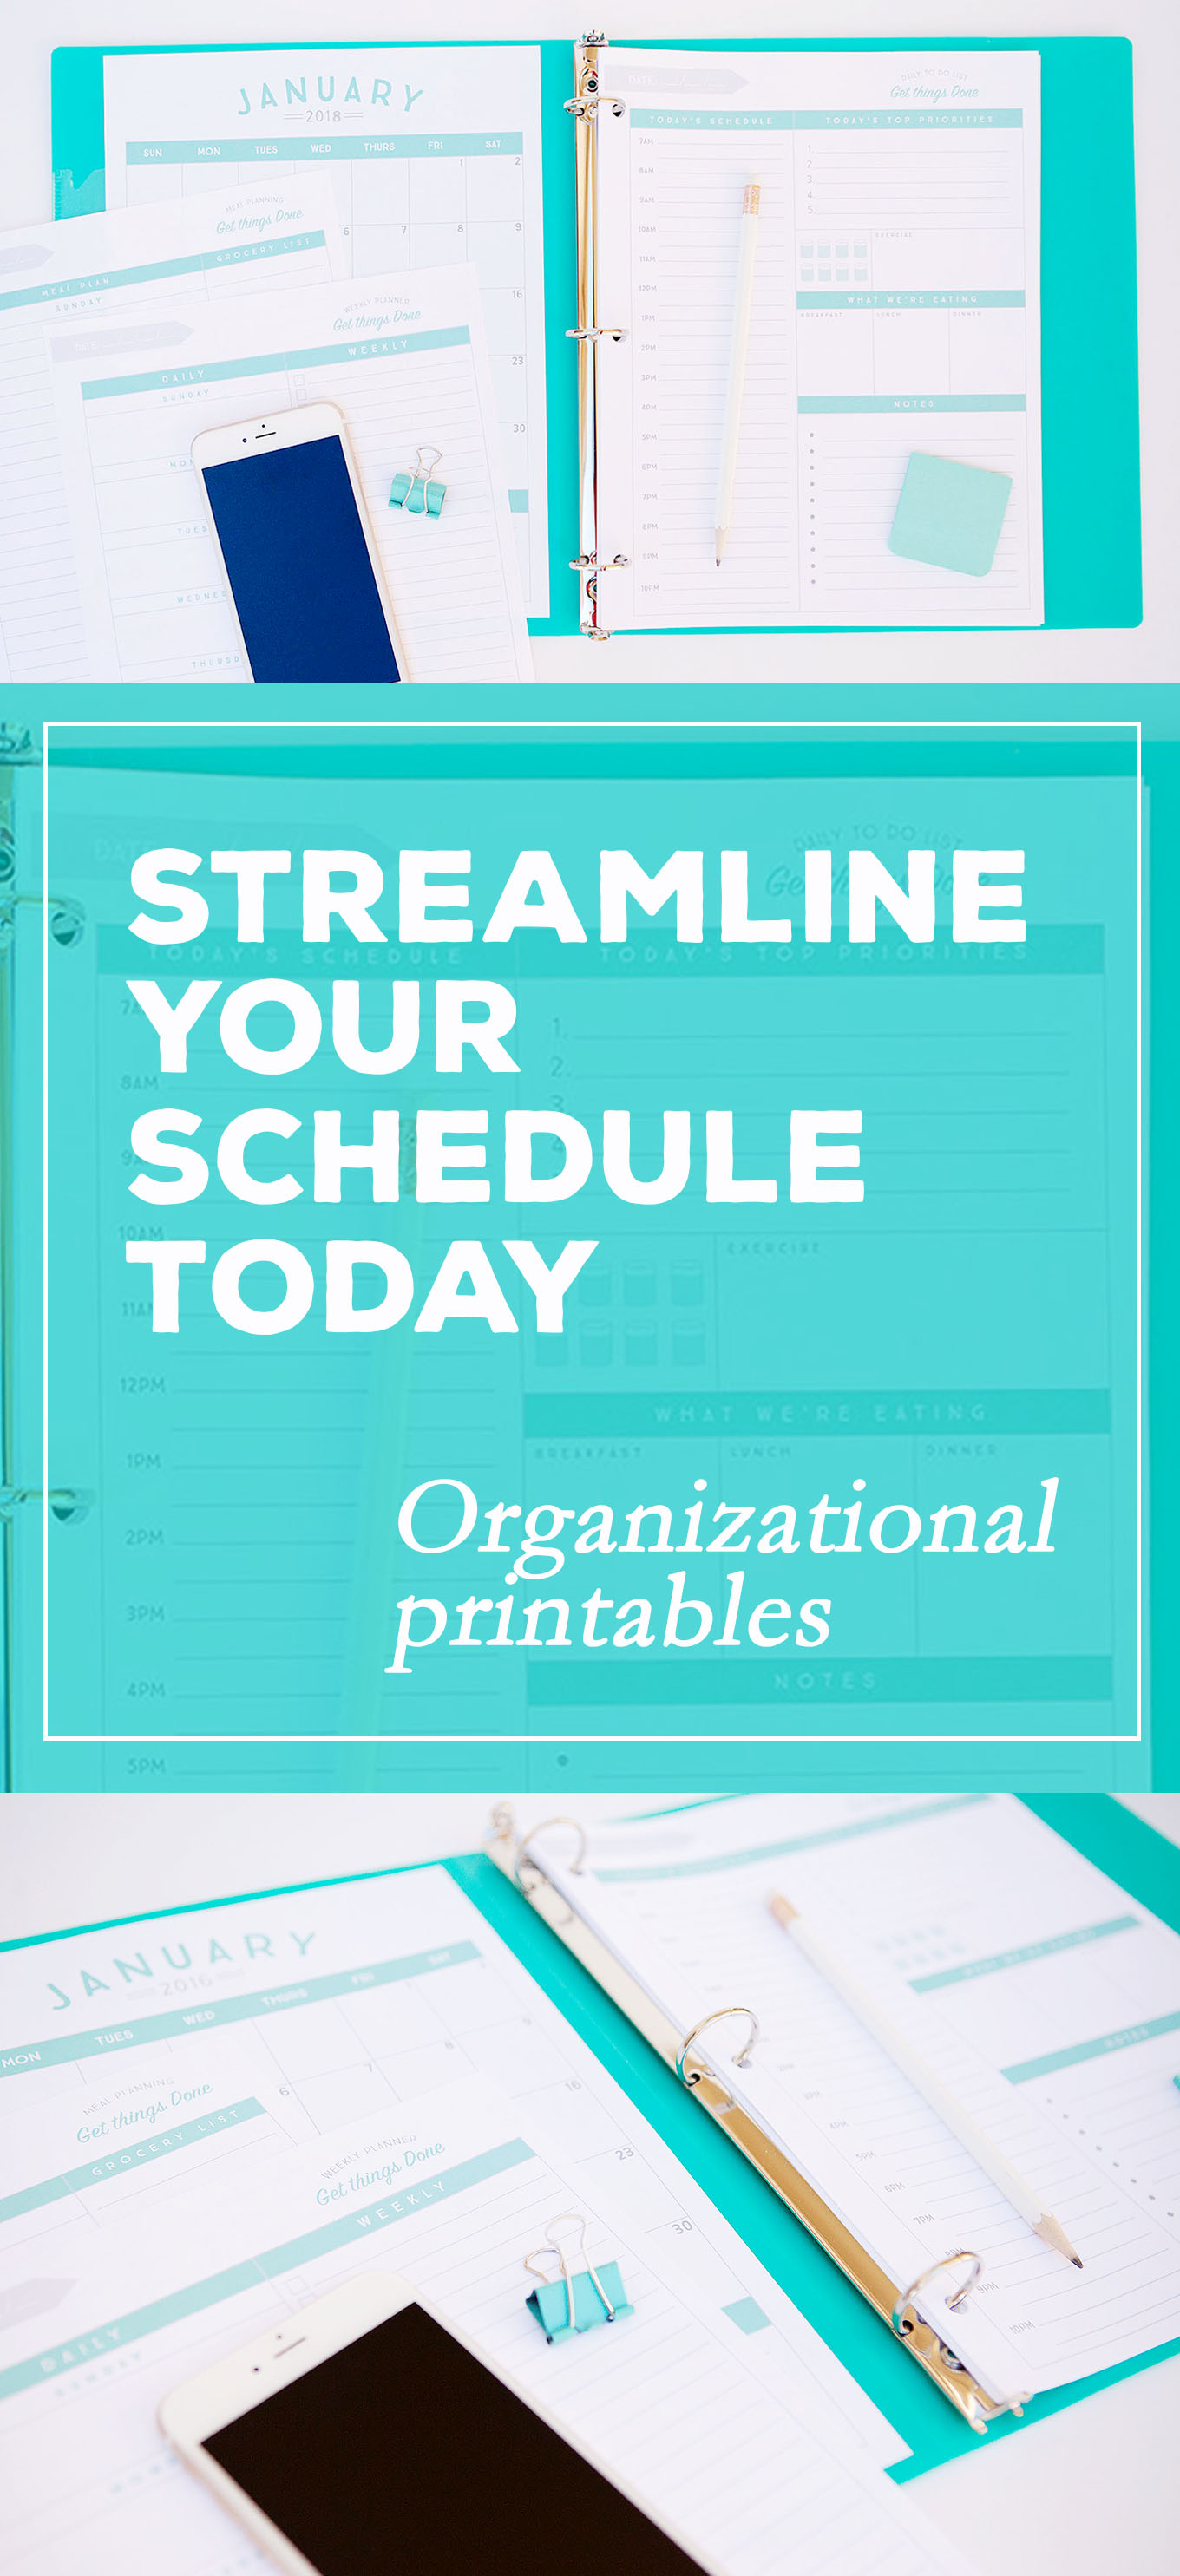 Organizational printables to streamline your to-do lists, your schedule, your meal plans—YOUR LIFE! Enjoy a weekly planner, a daily to-do list and schedule, a meal planner, and a 2018 calendar.